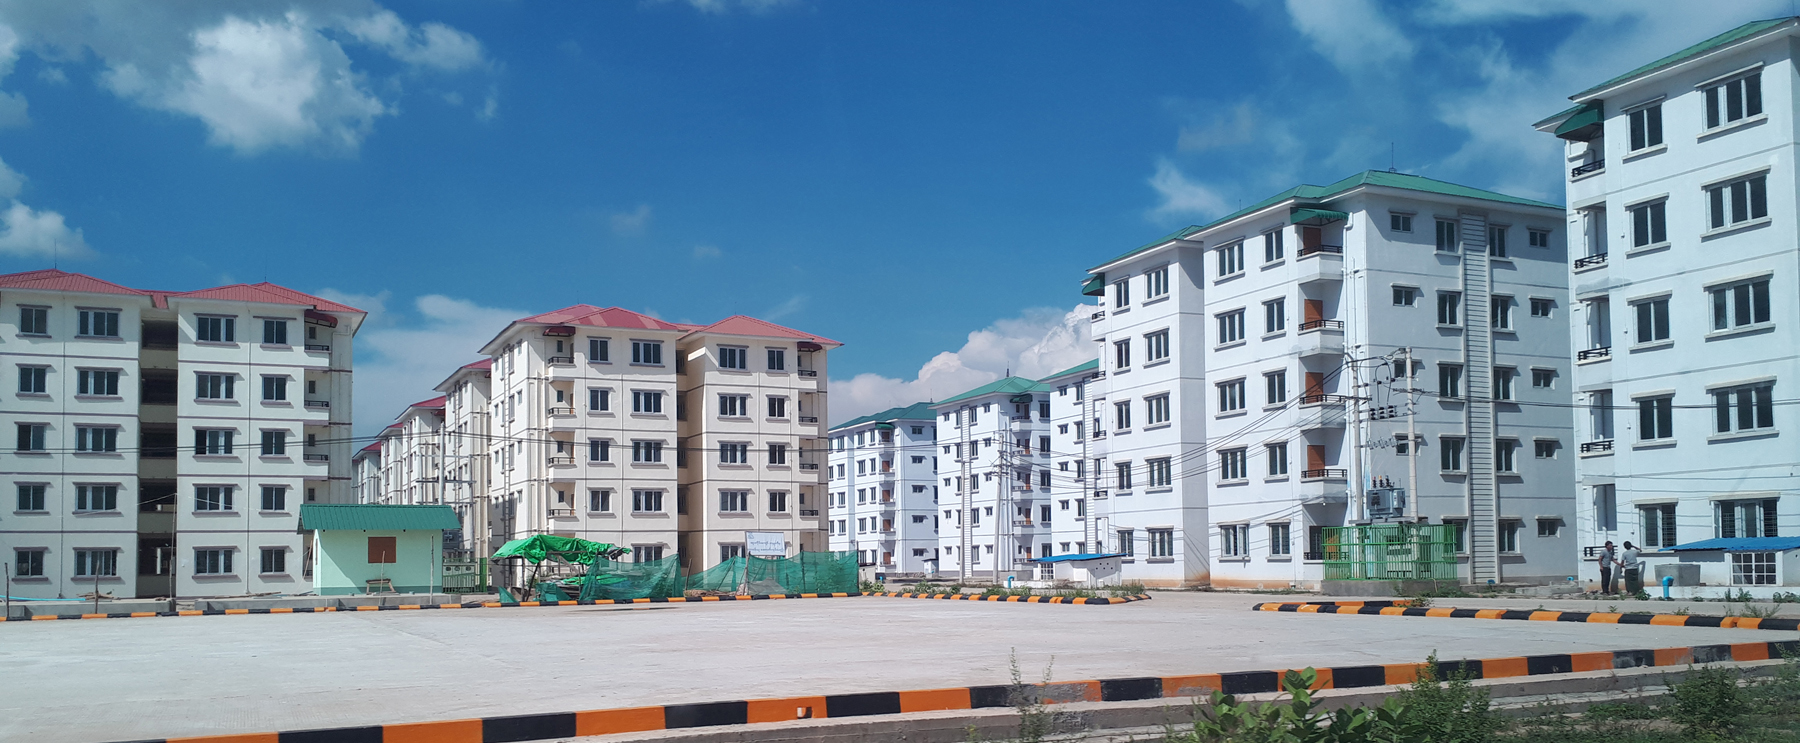 Study of Consumer Perception and Attitude on Commercial Complex in Mandalay